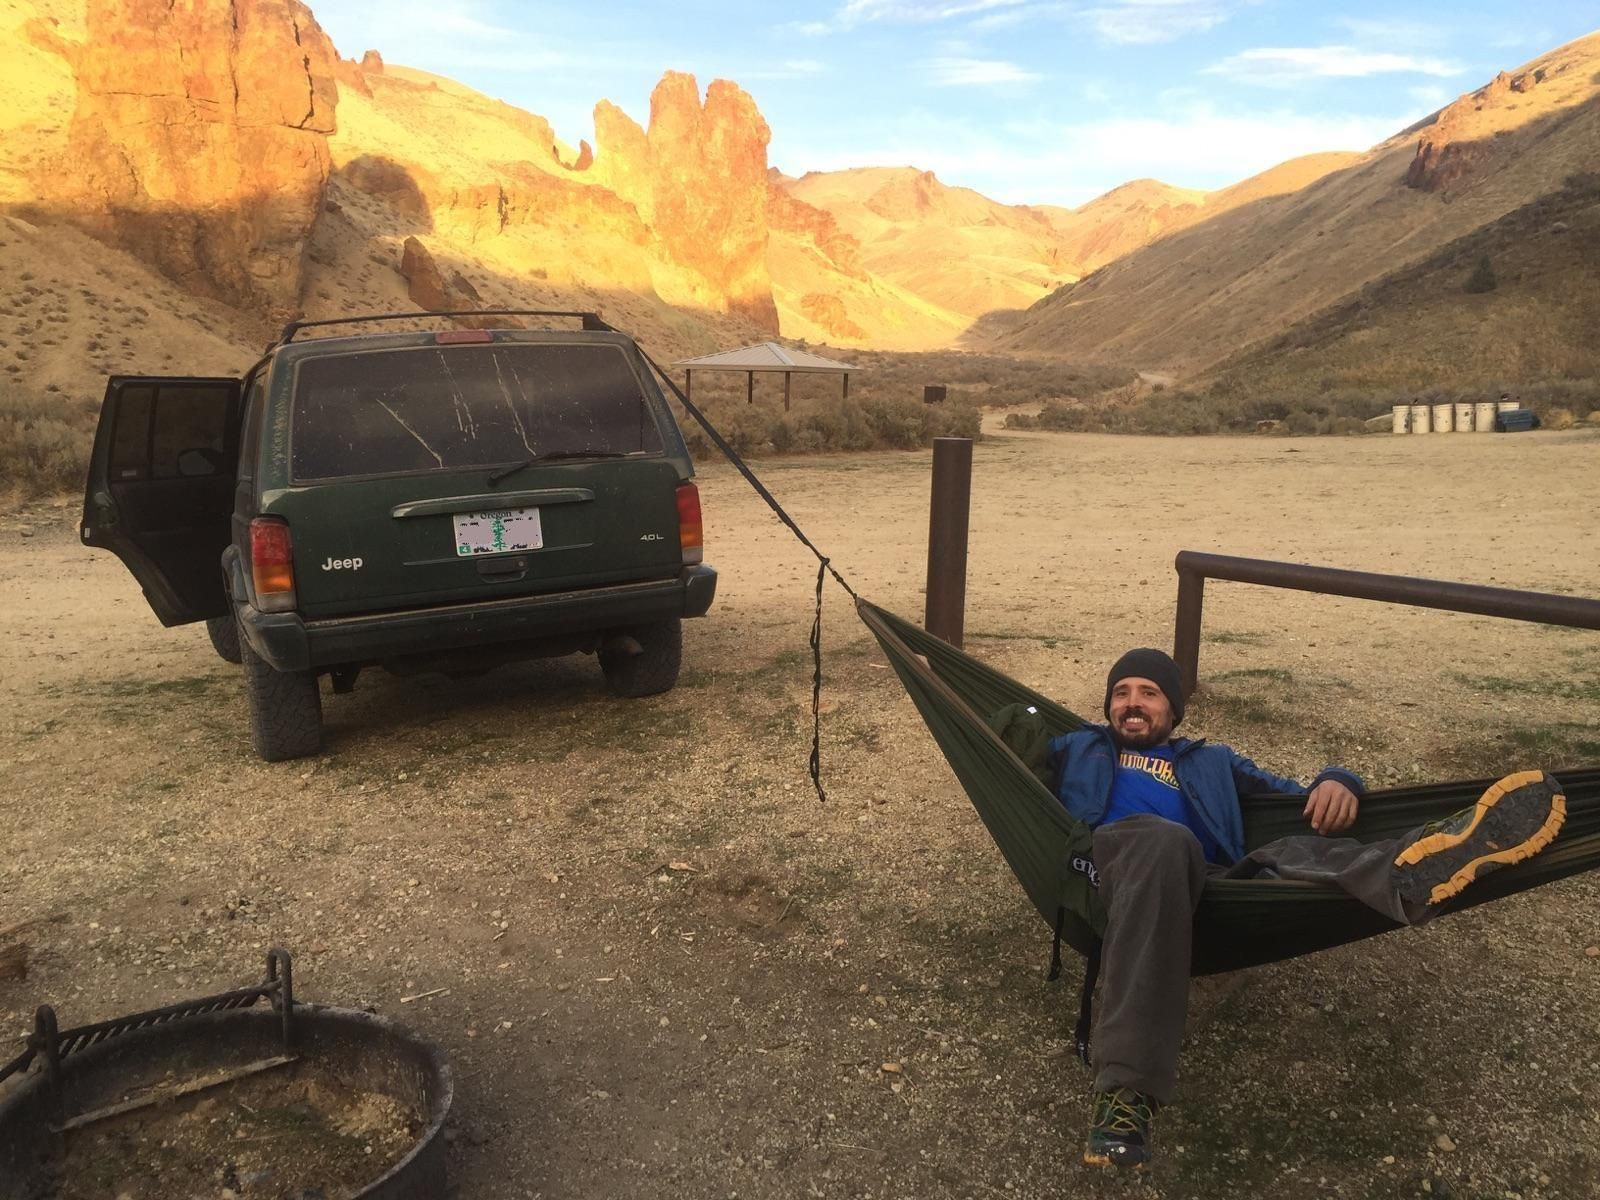 The Jeep Was Useful For Hammock Camping In The Desert Where Trees